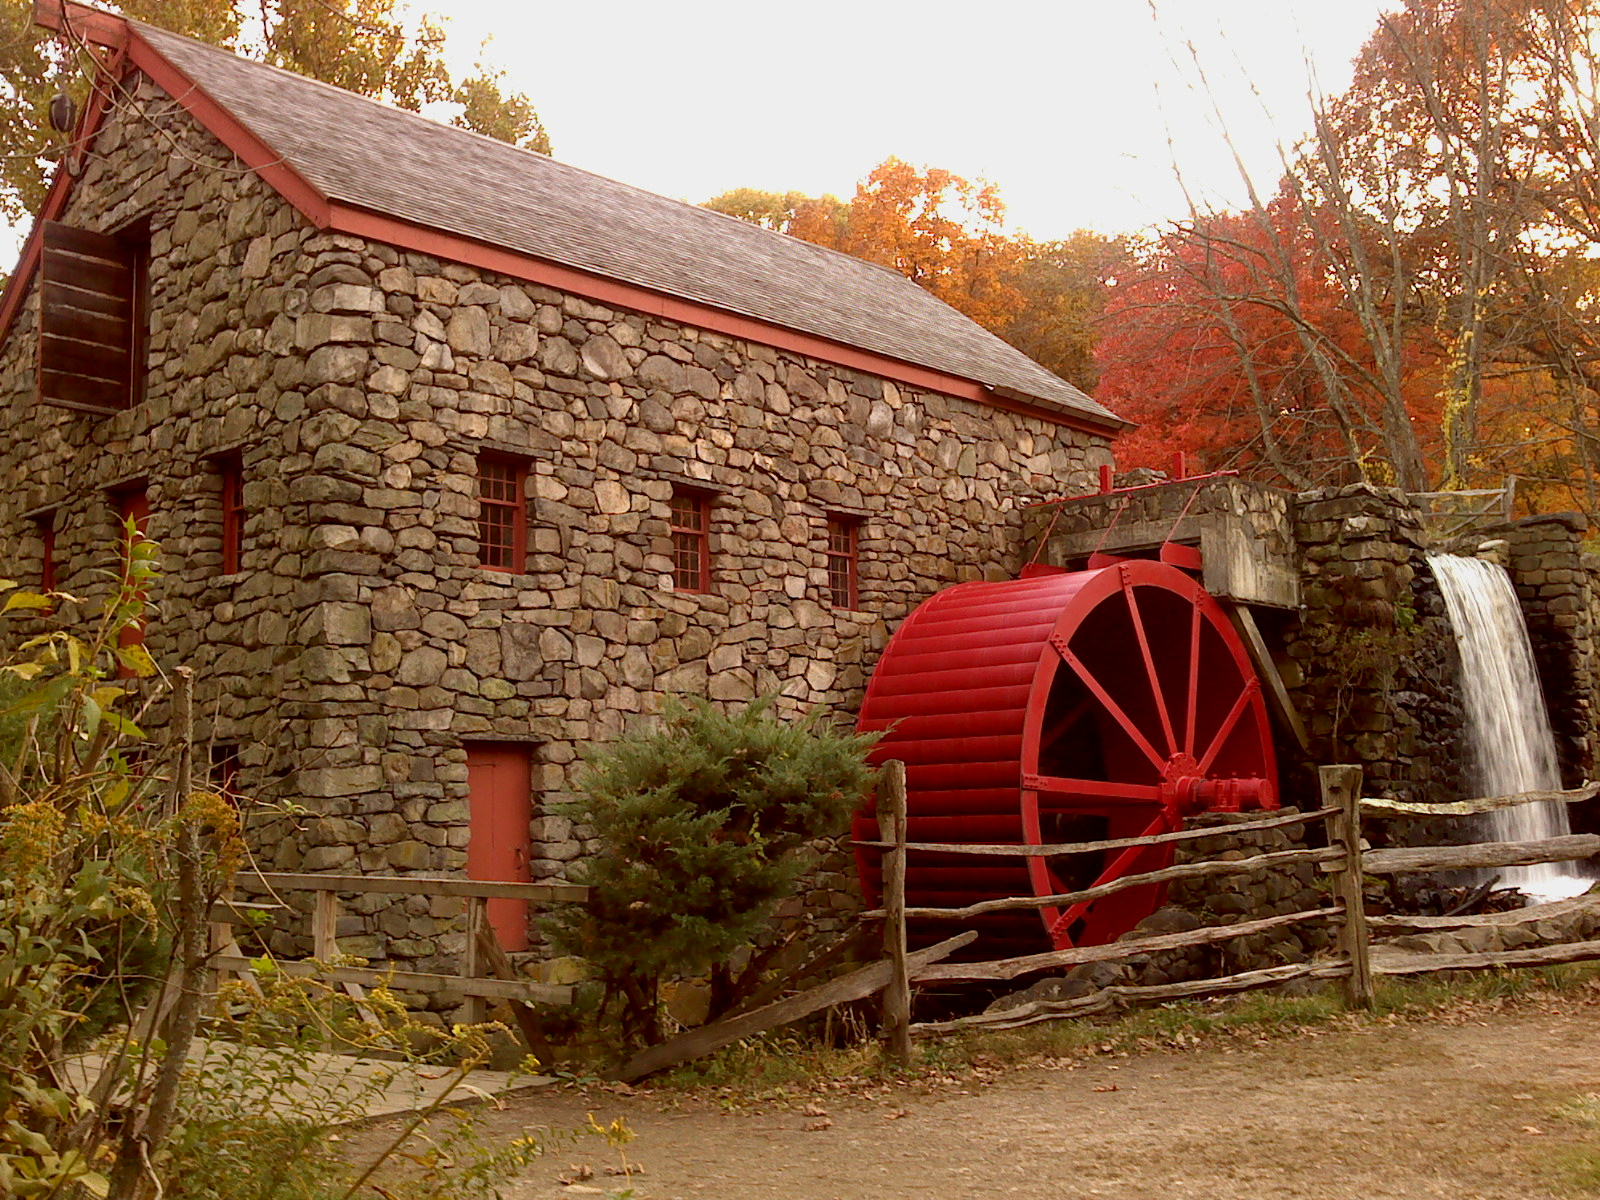 The Wayside Inn Grist Mill  Photos  New England Today